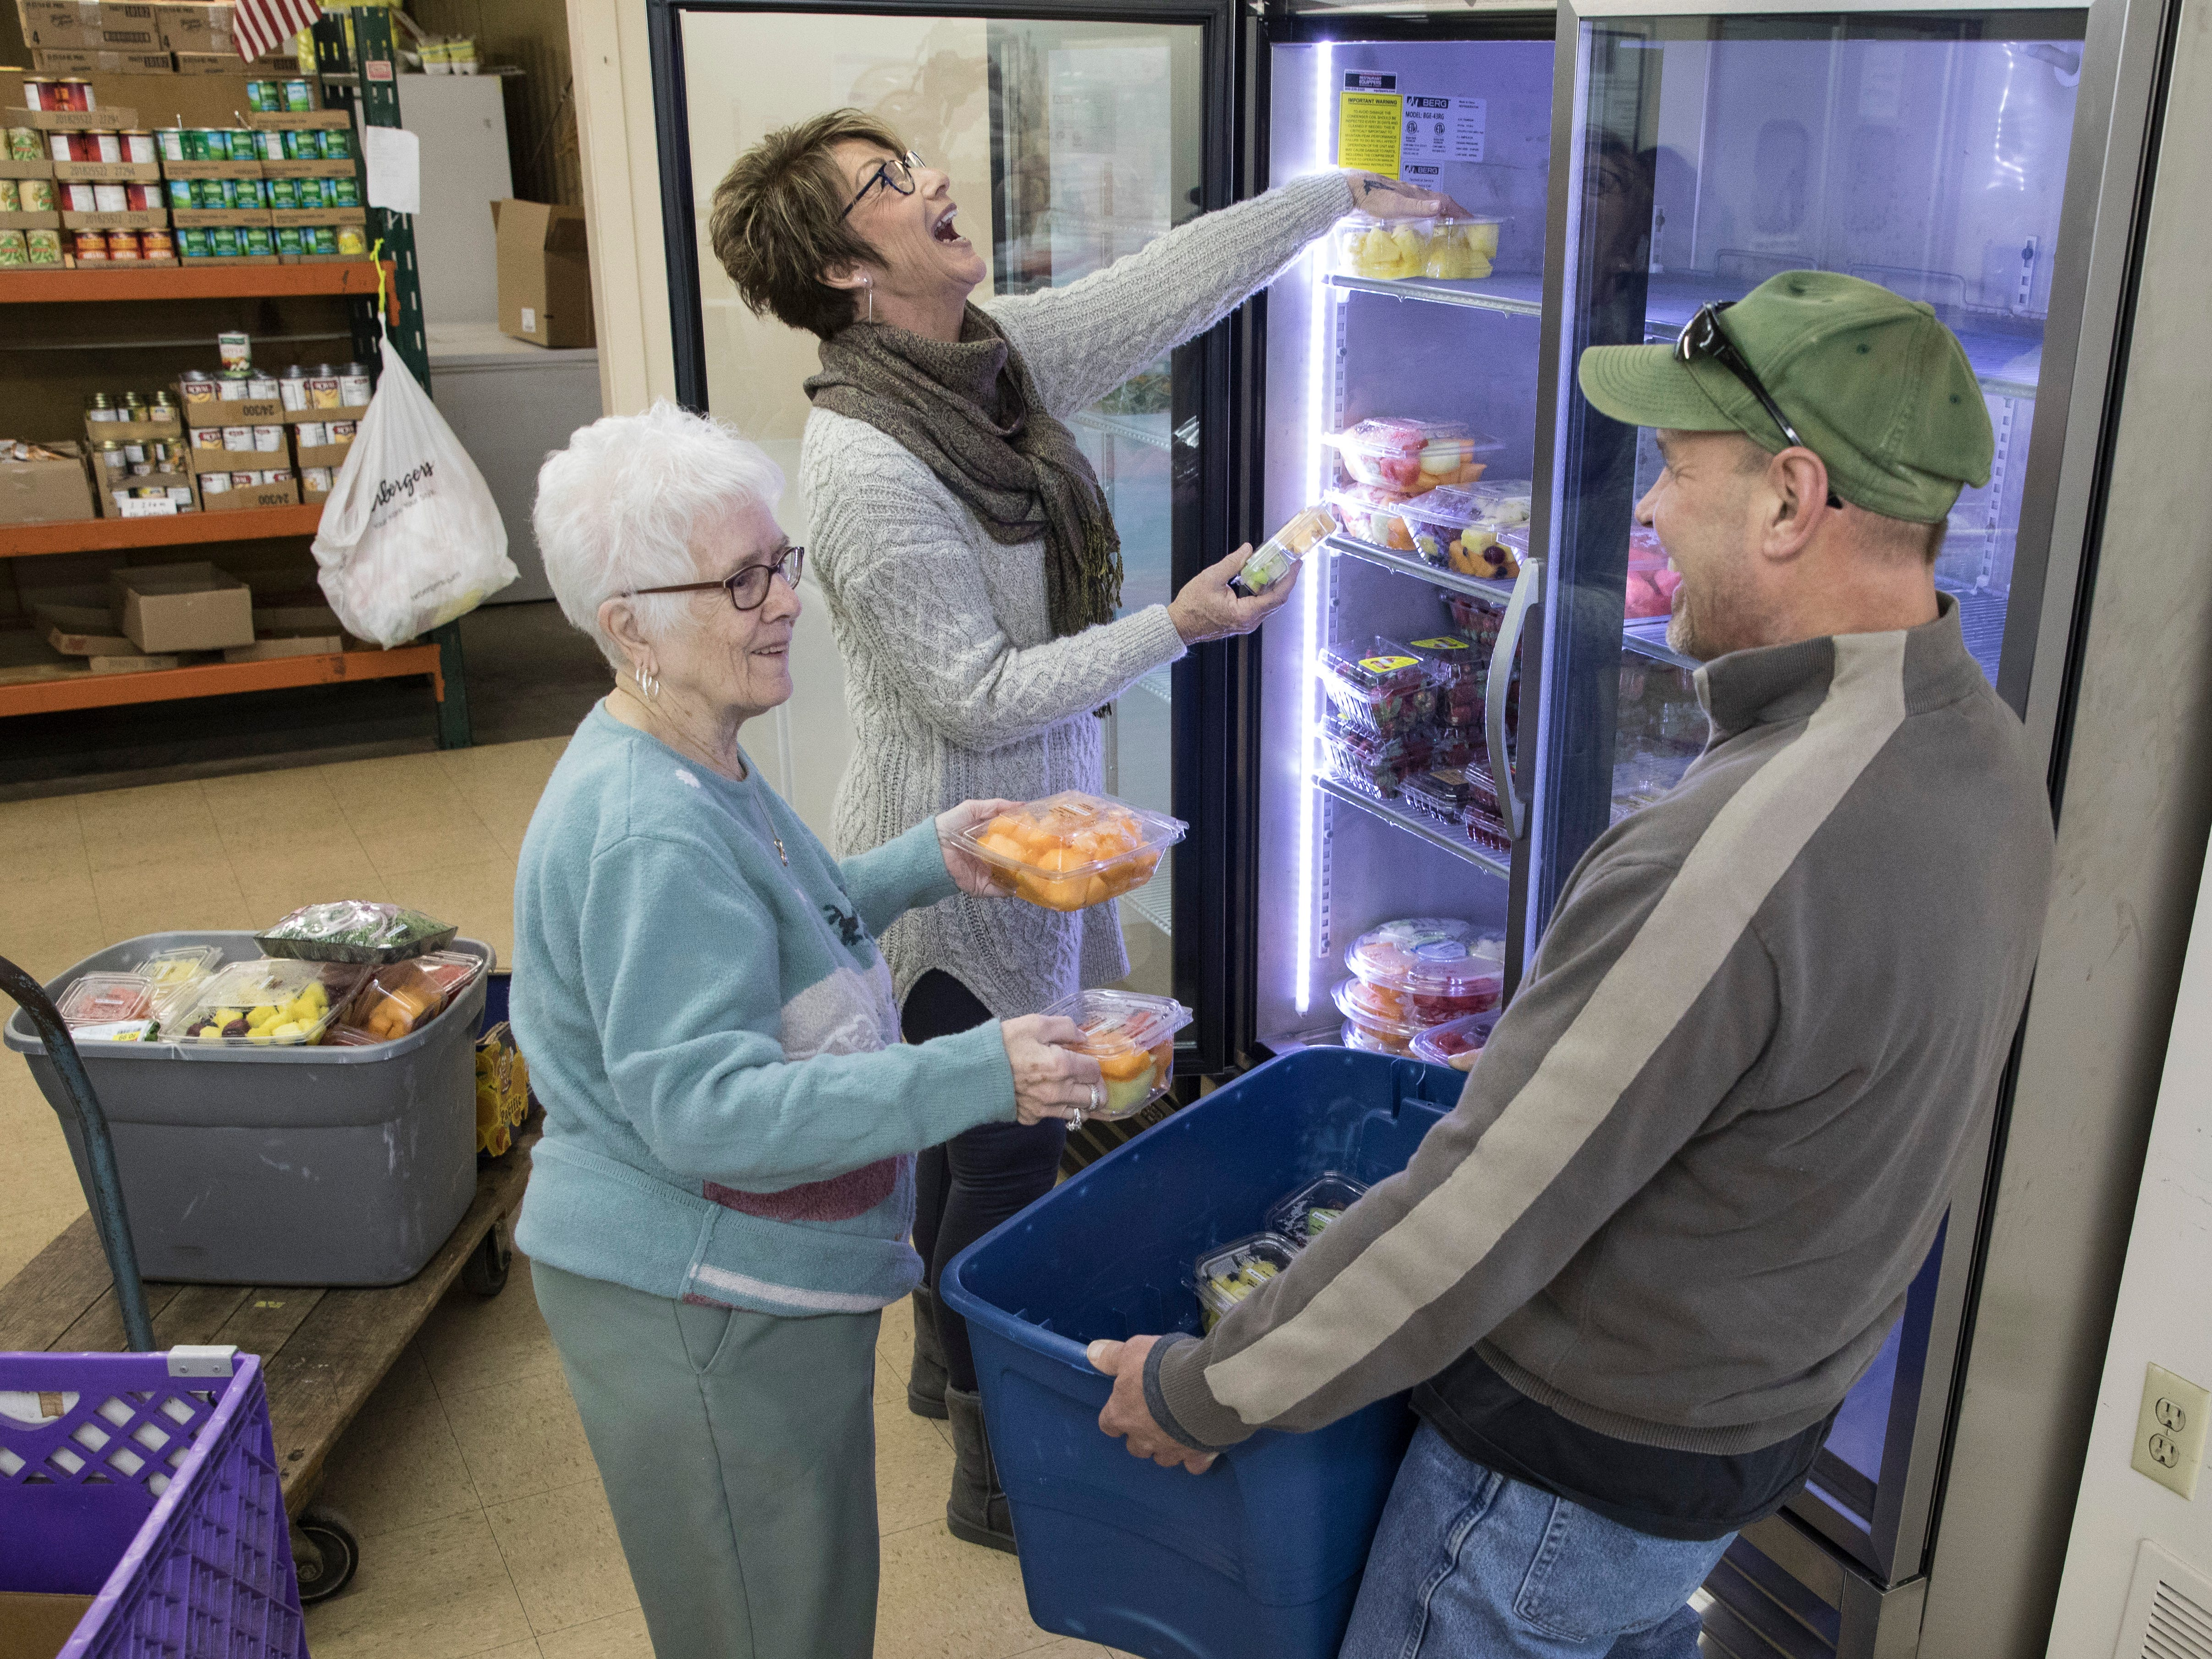 (L-R) Carolyn Russell, Denise Litter, and Steve Durham laugh as they stock fruit and try hard to remember how long they have volunteered at the Good Samaritan Food Pantry and how they enjoy helping others.